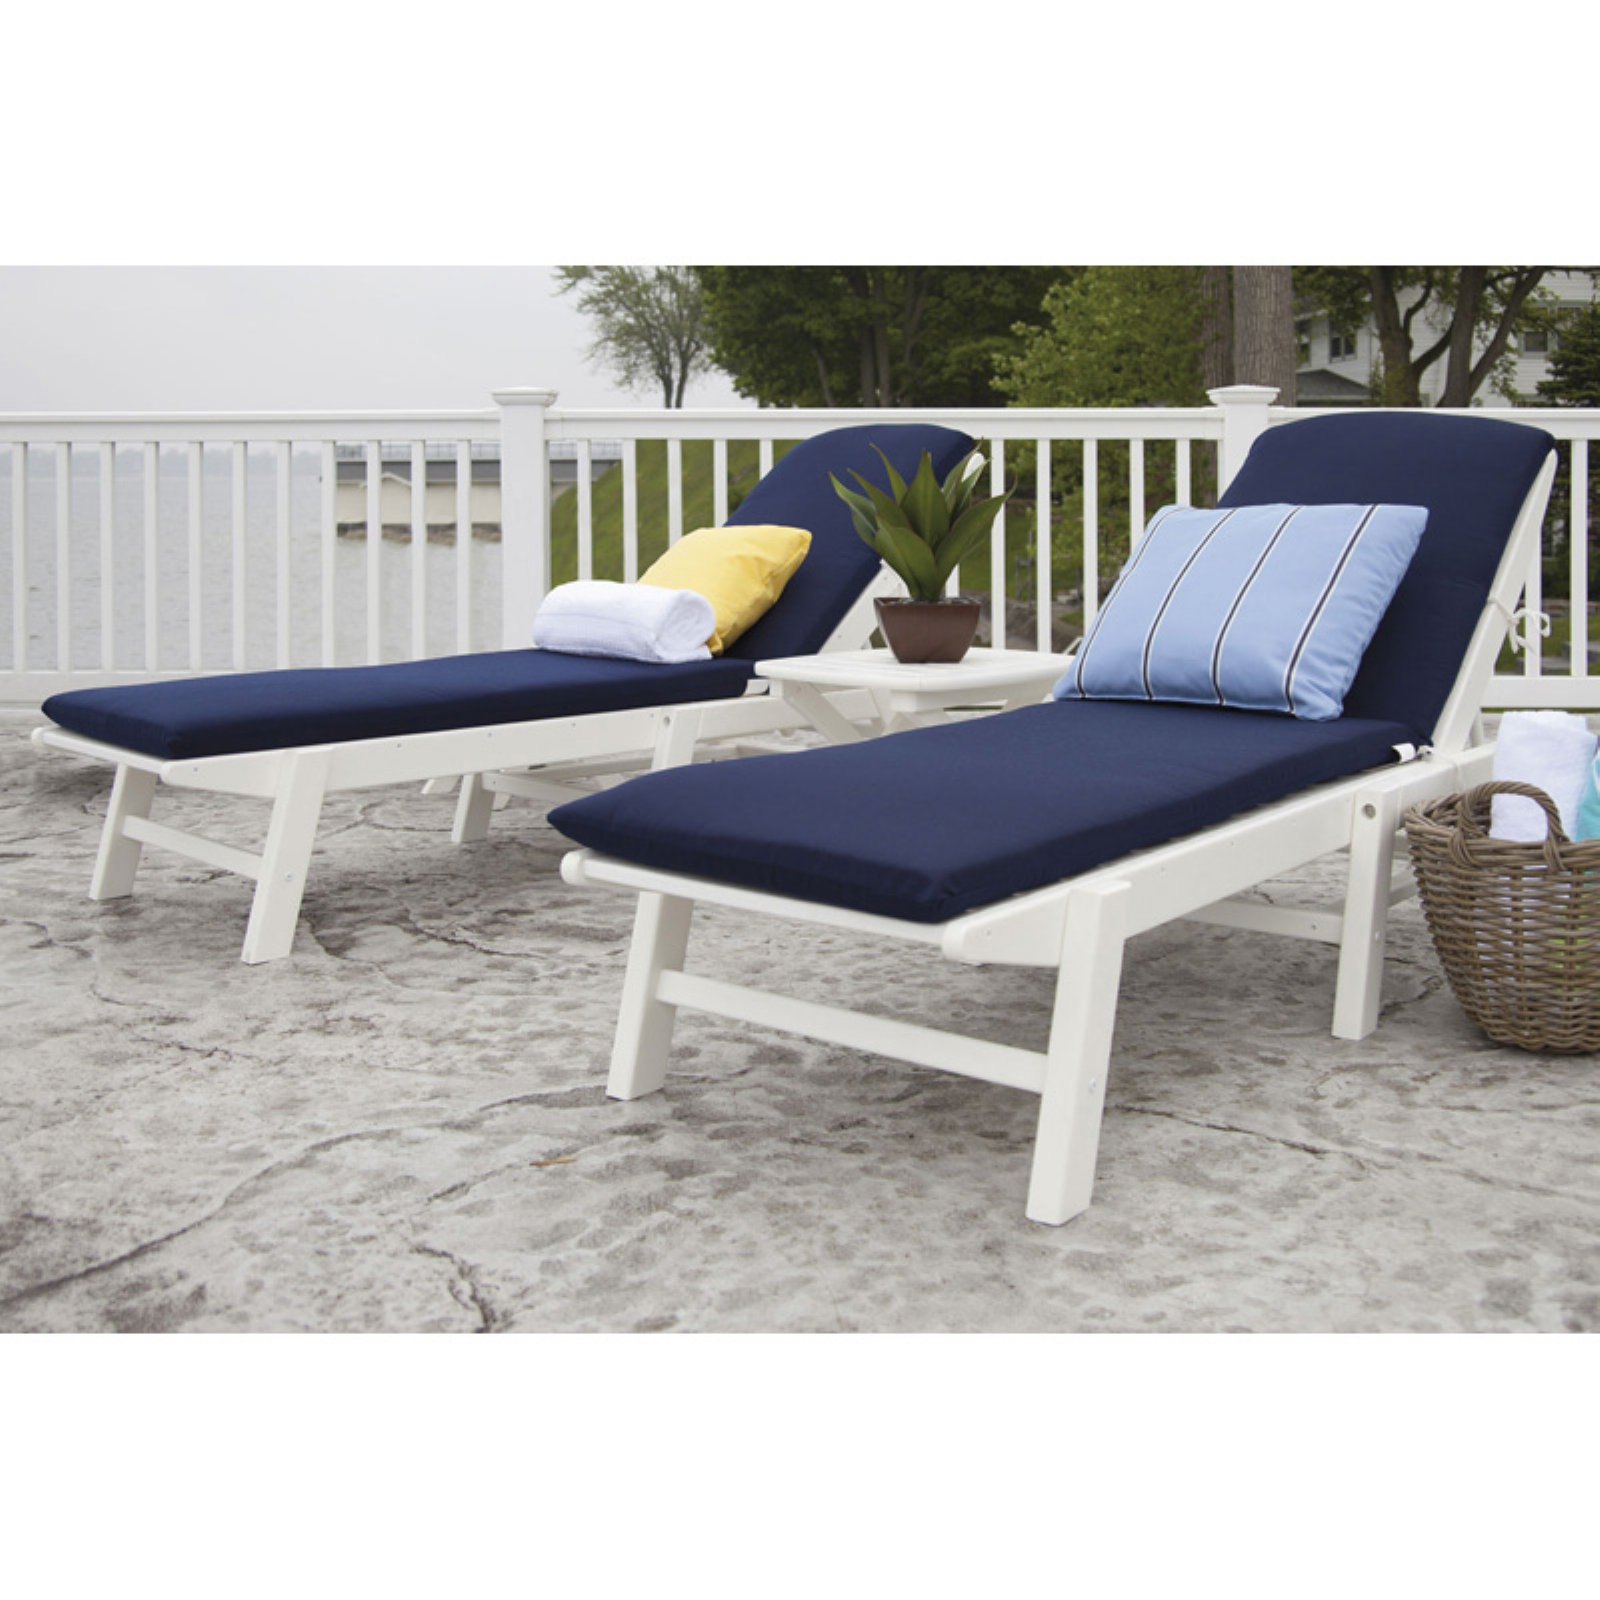 POLYWOOD® Nautical Stackable White Wheeled Chaise with Navy Cushions - Set of 2 with Table